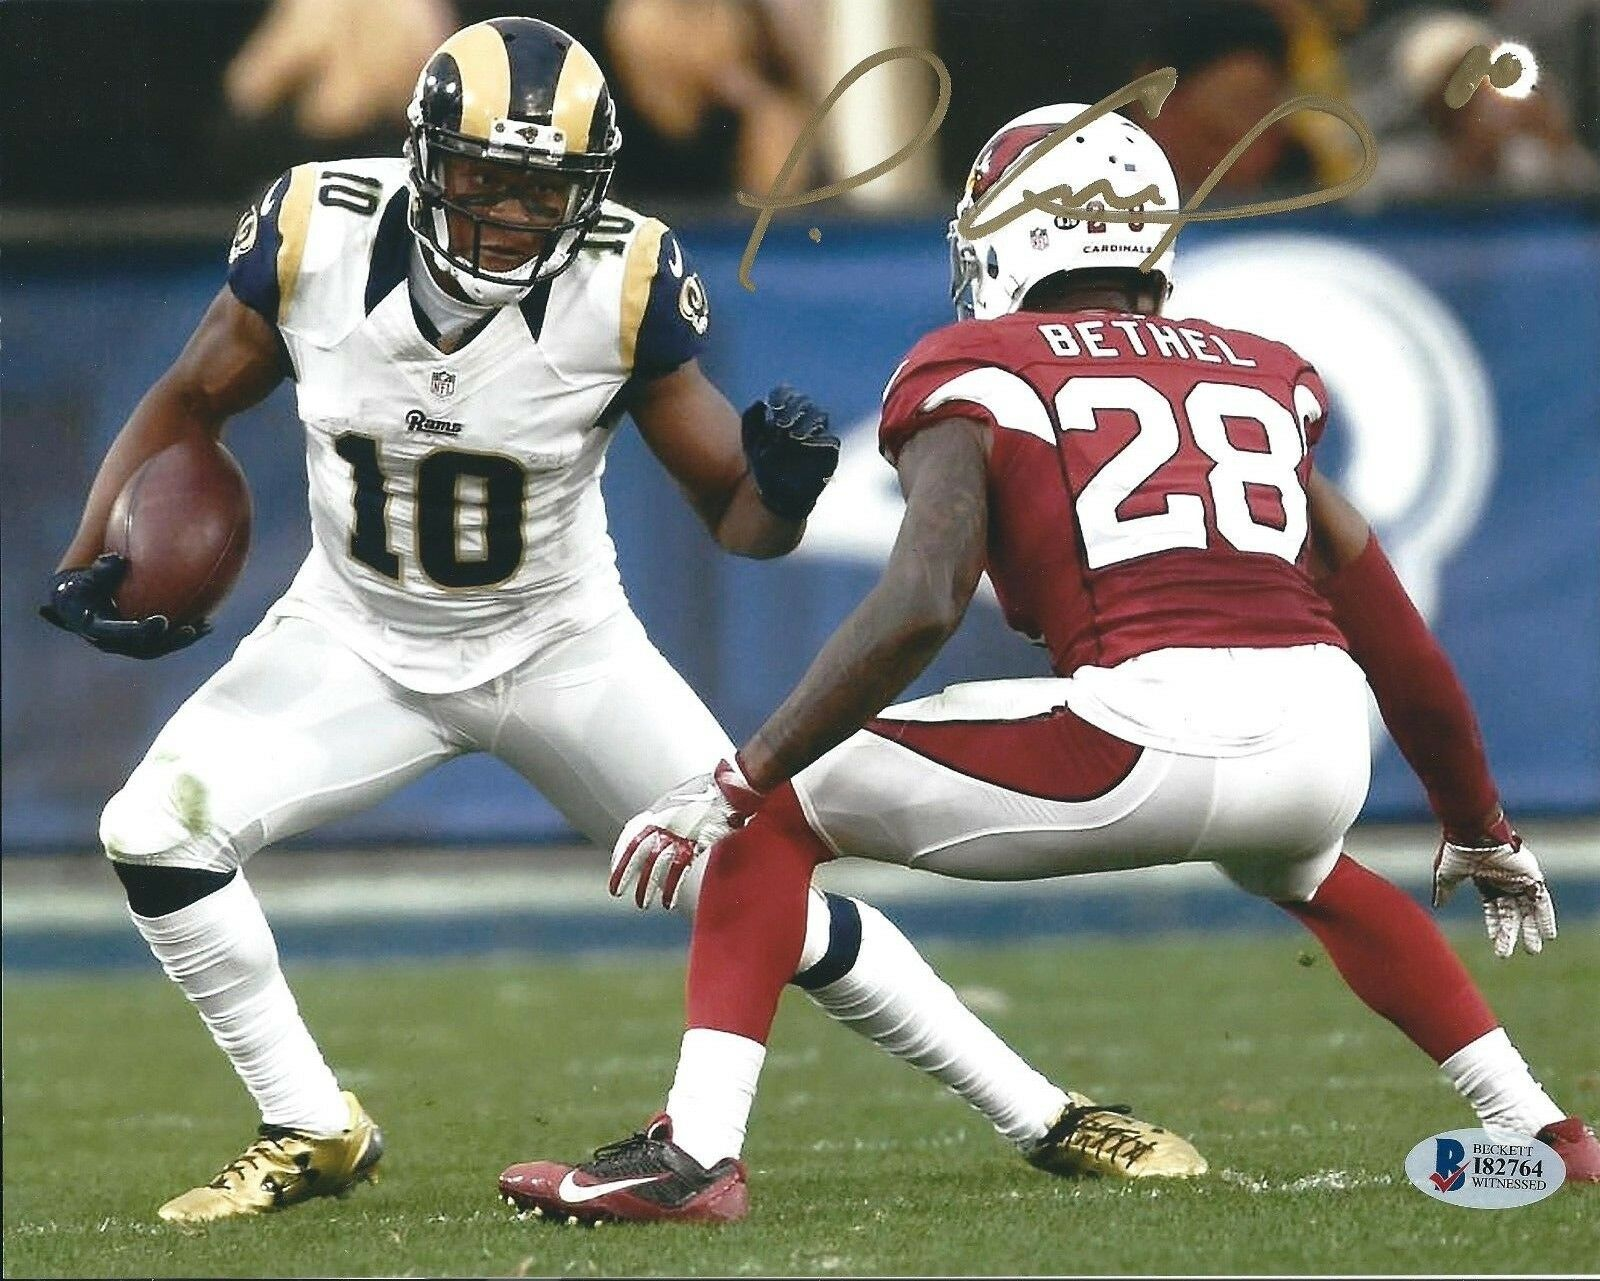 Pharoh Cooper Signed Los Angeles Rams Football 8x10 Photo Beckett BAS I82764